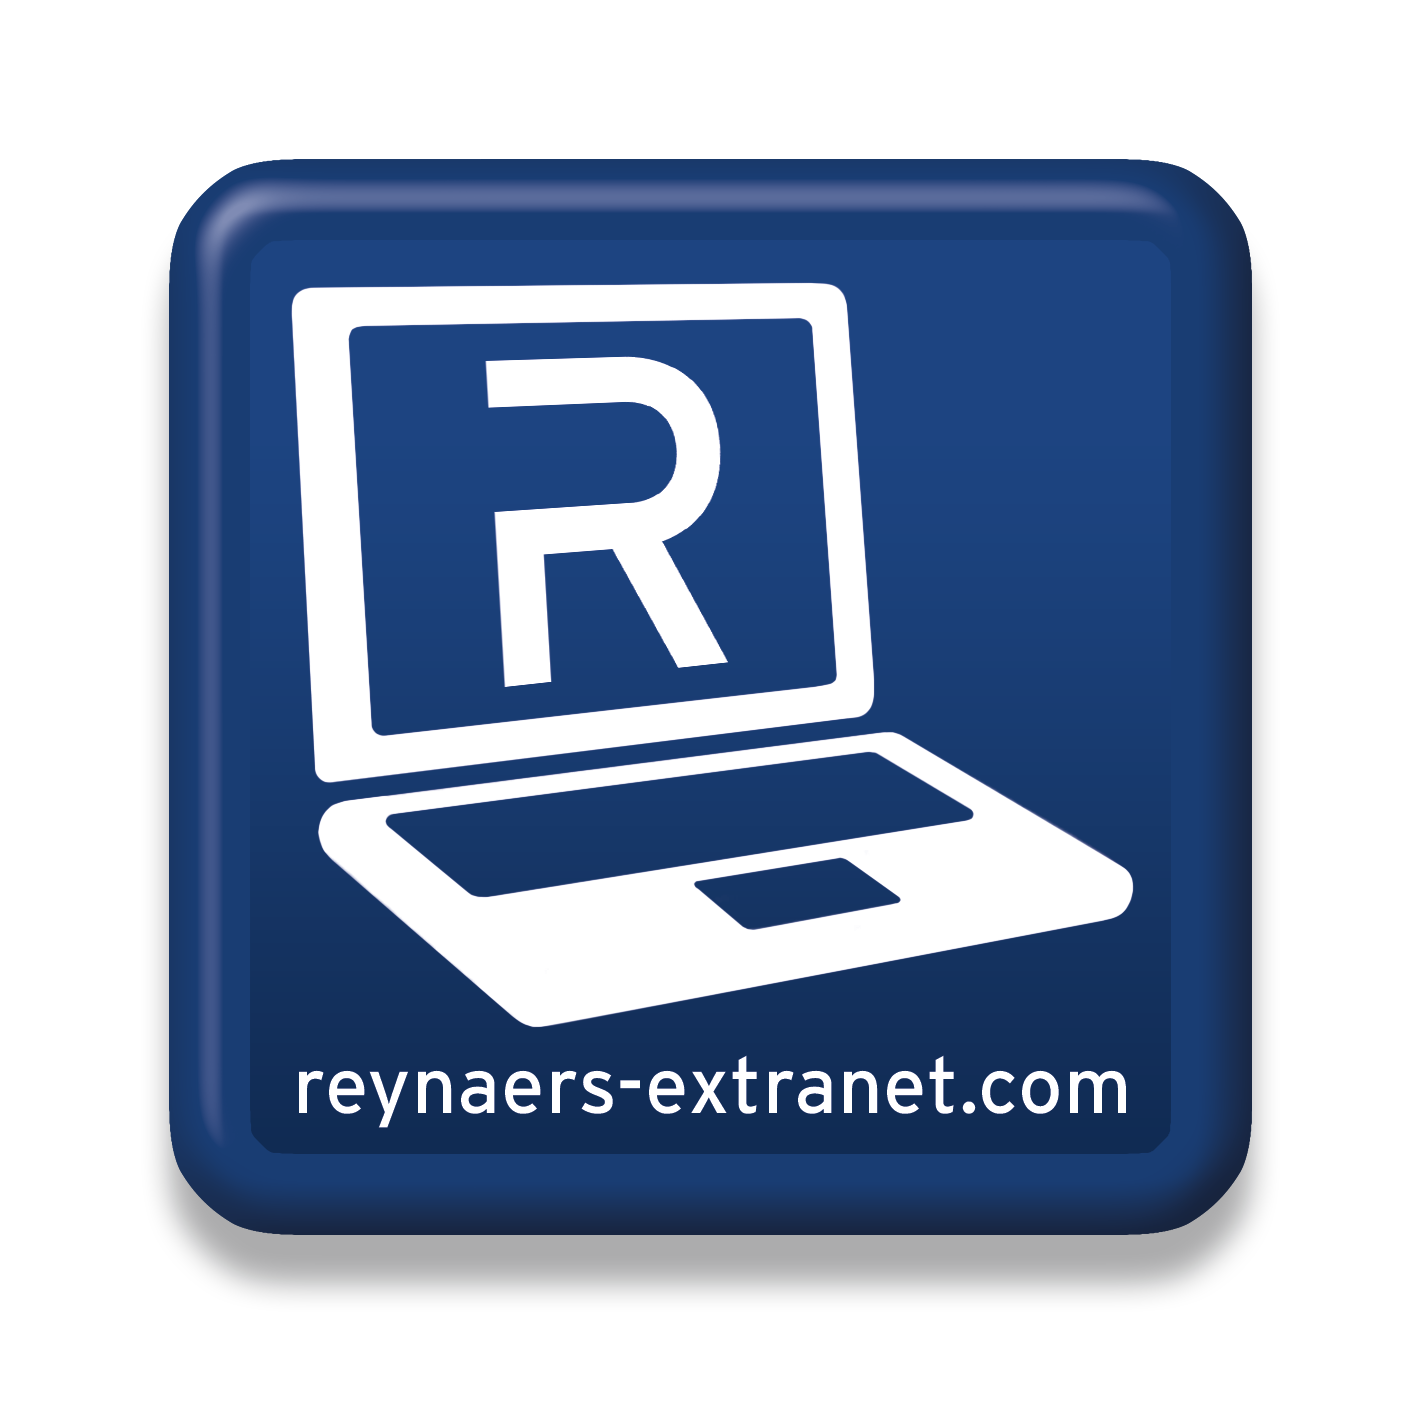 REYNAERS EXTRANET